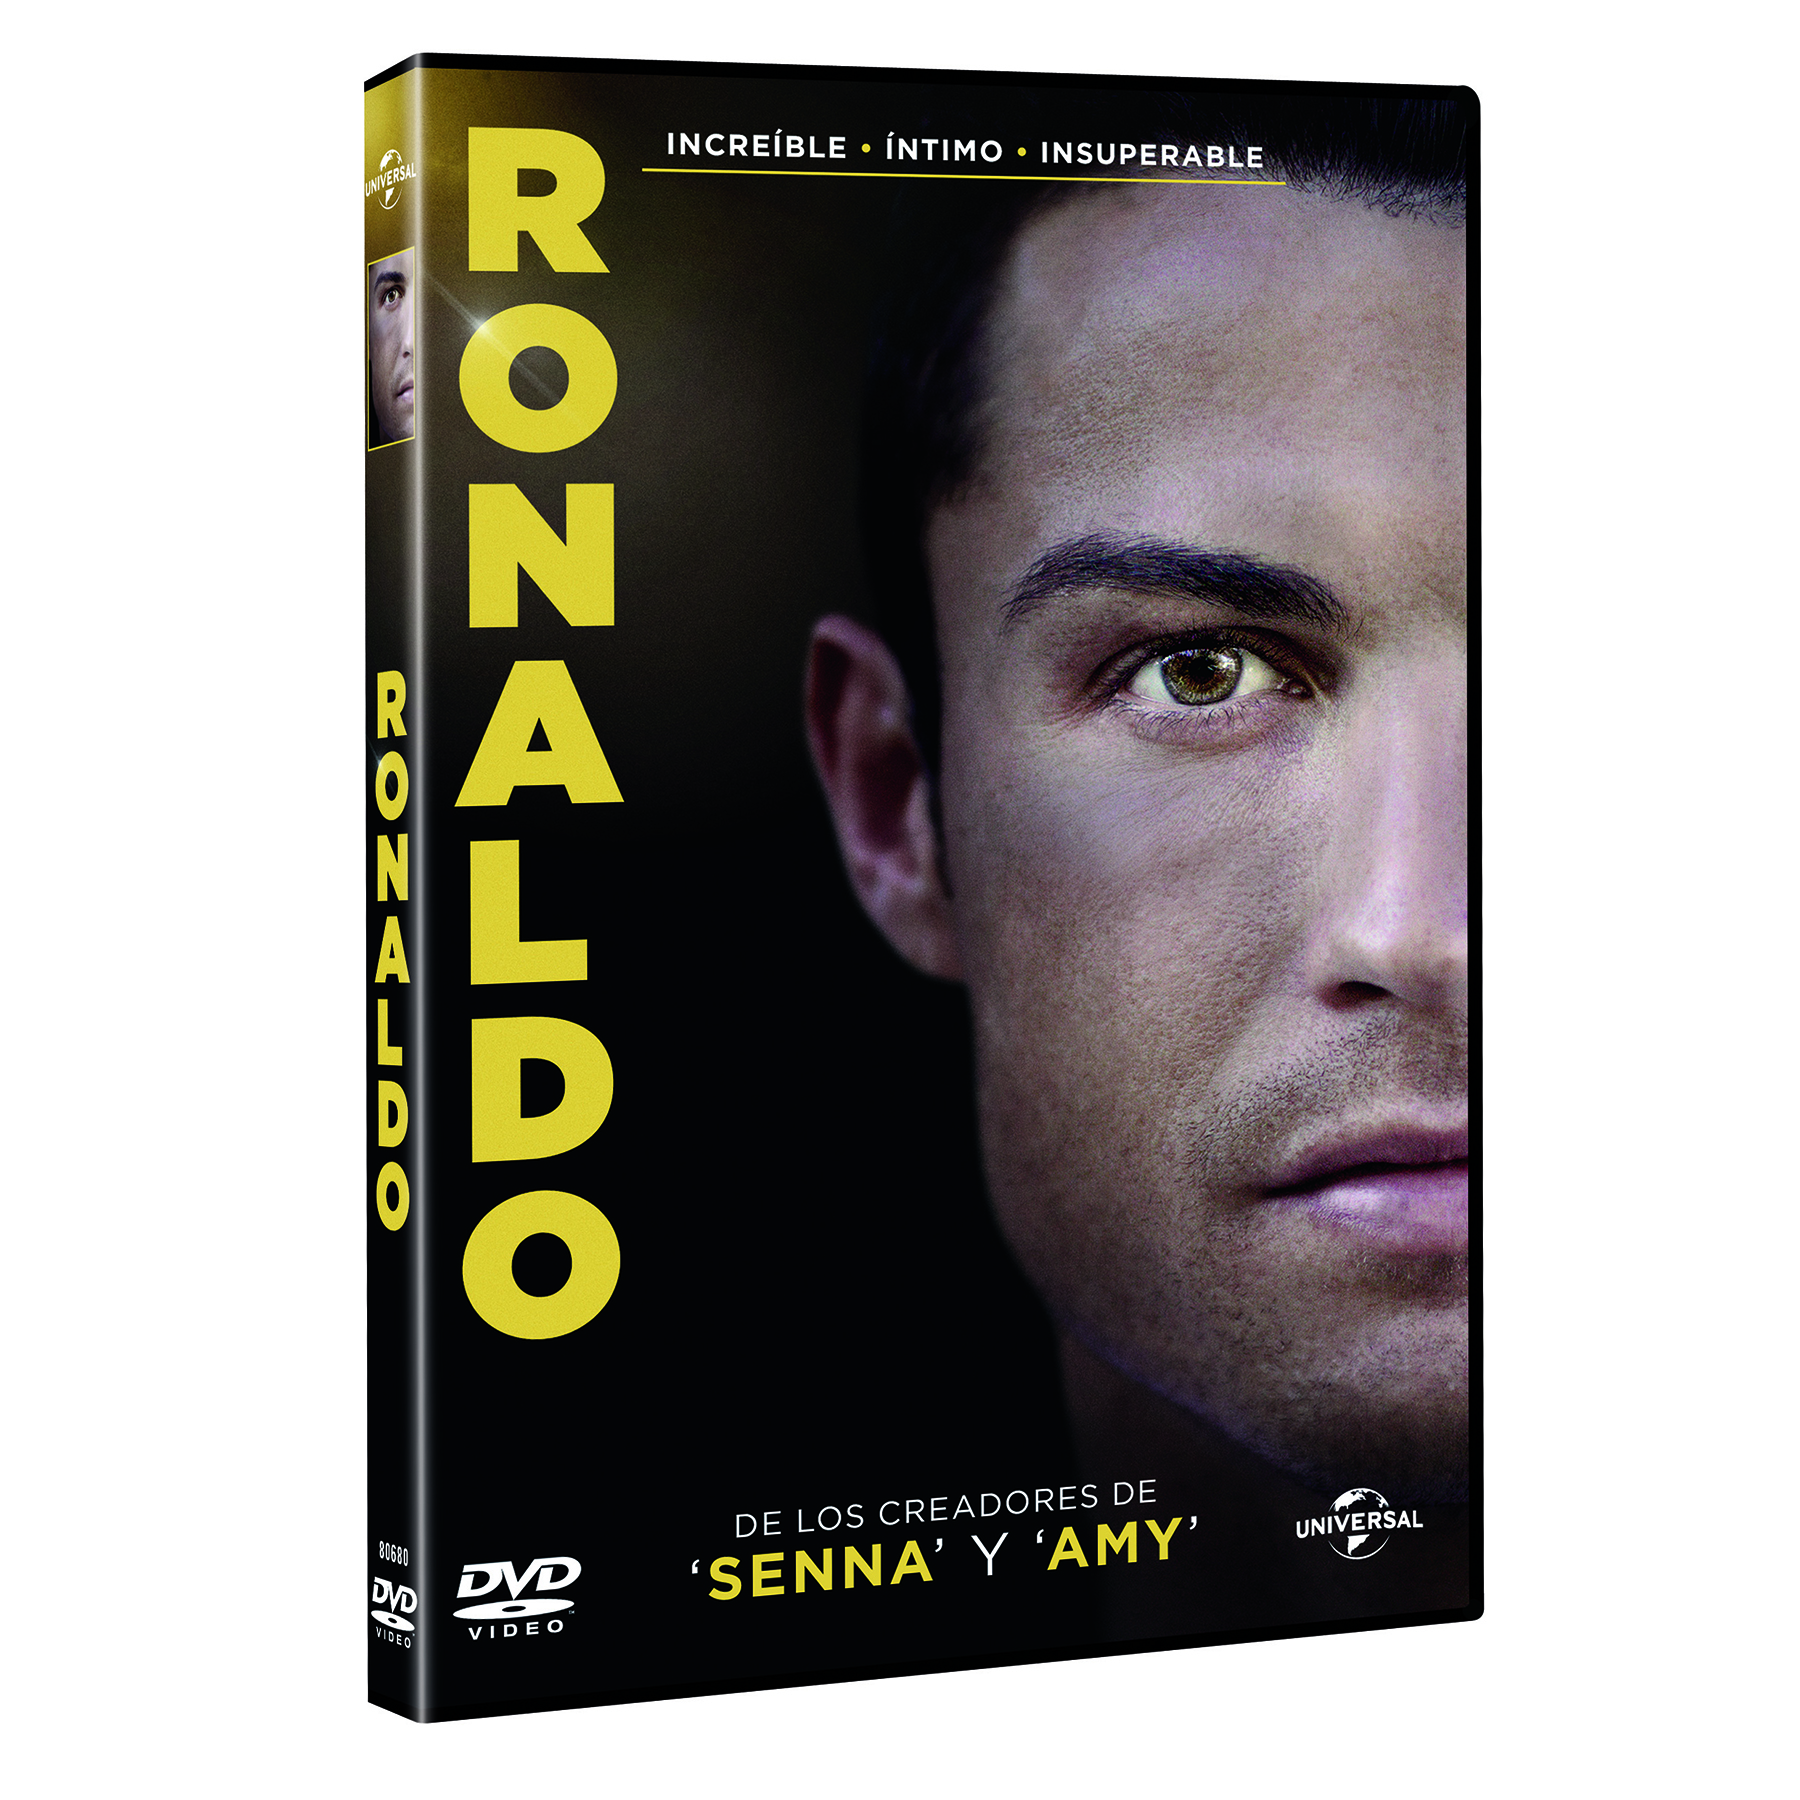 Real Madrid Ronaldo DVD